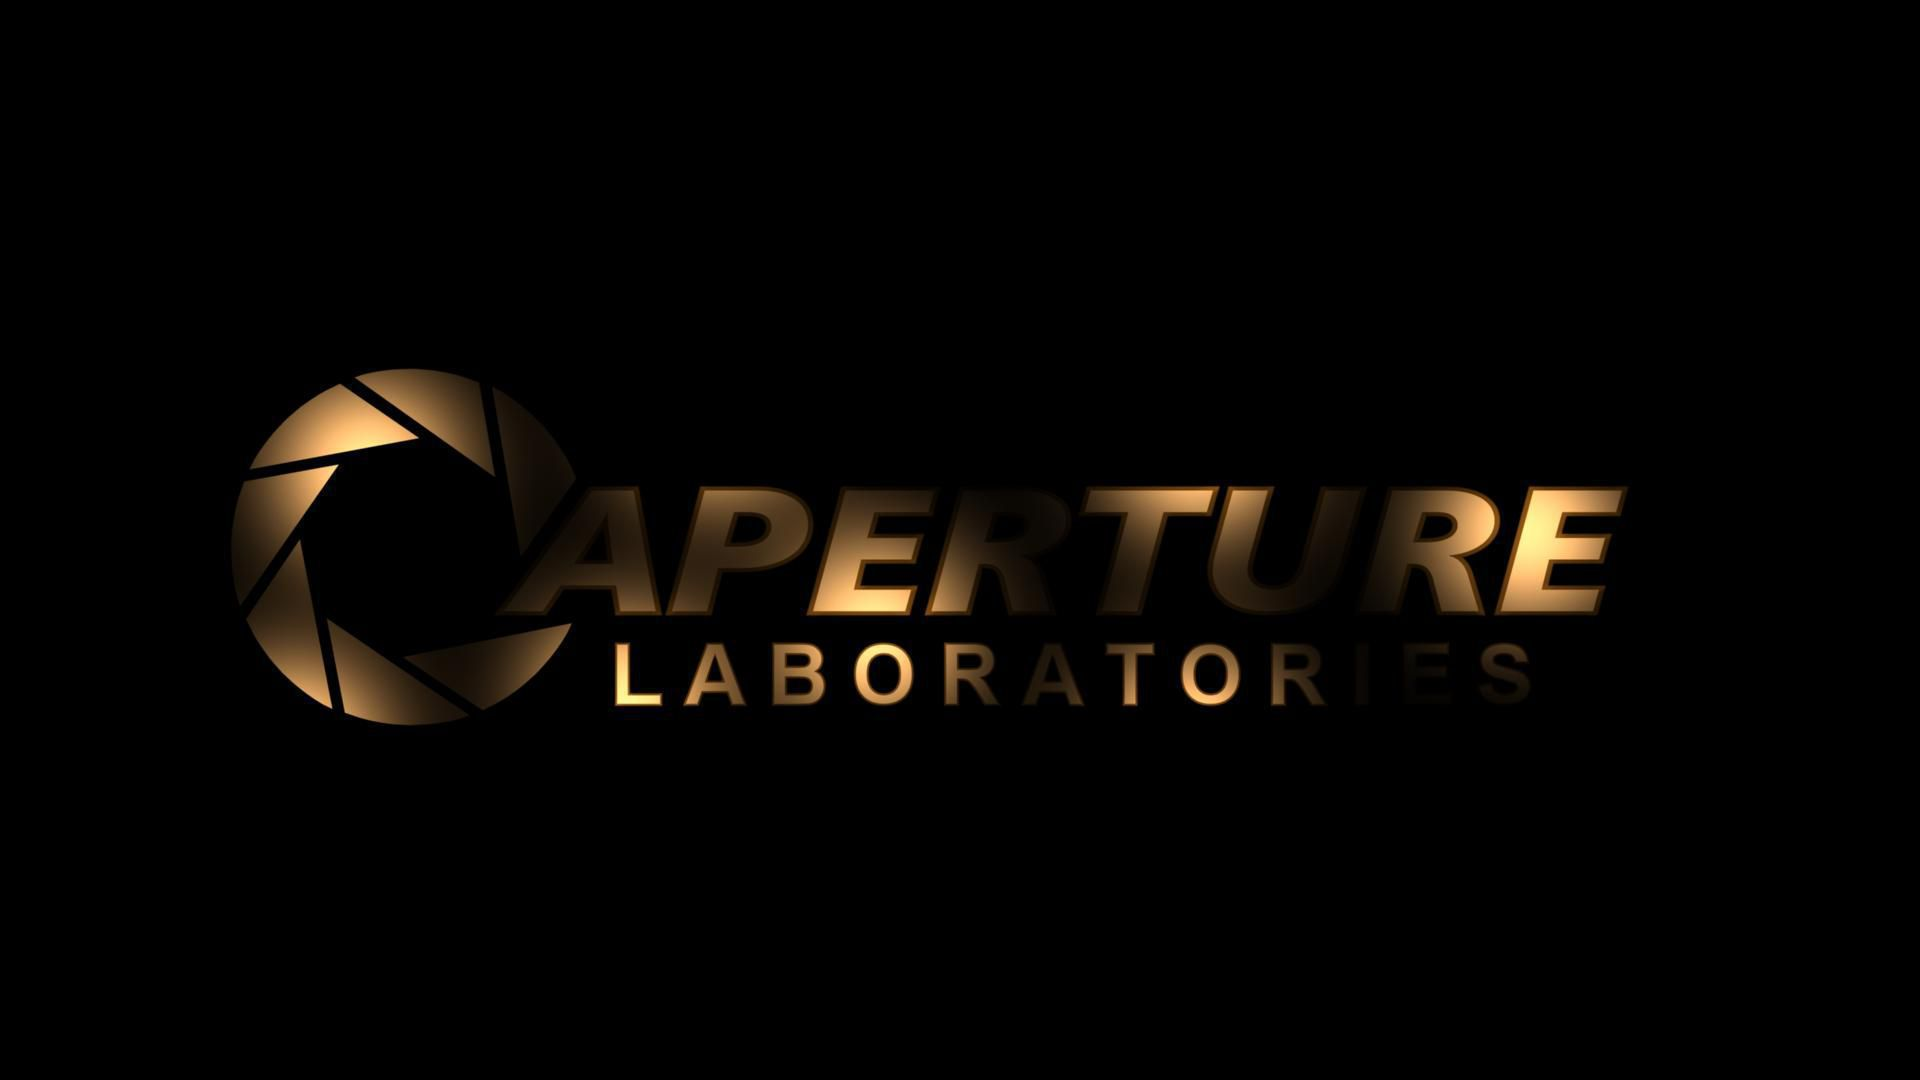 Aperture Science Tumblr